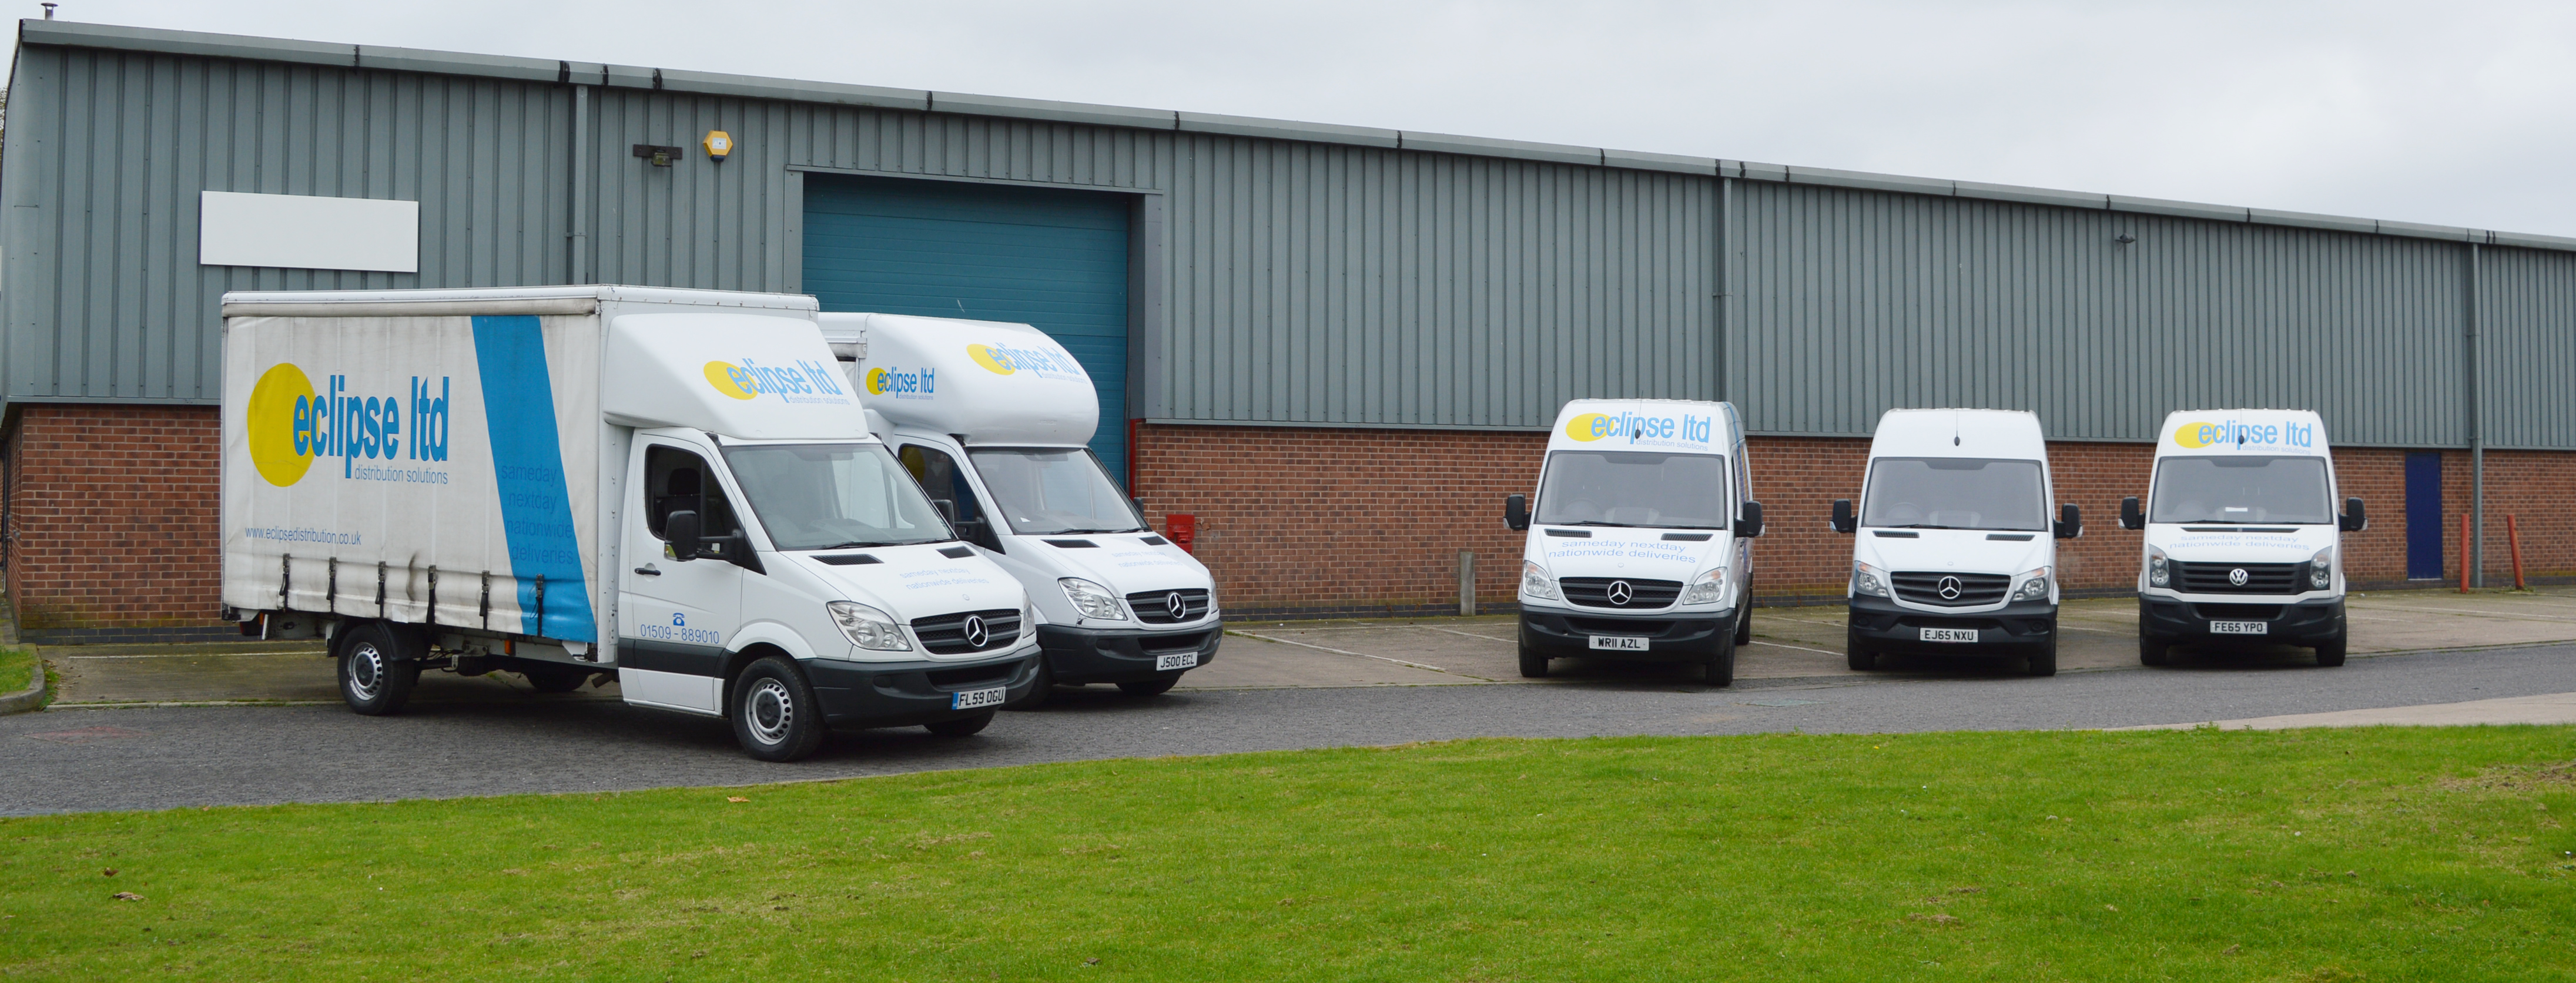 An image of five Eclipse Distrubution delivery vans parked at the depot.